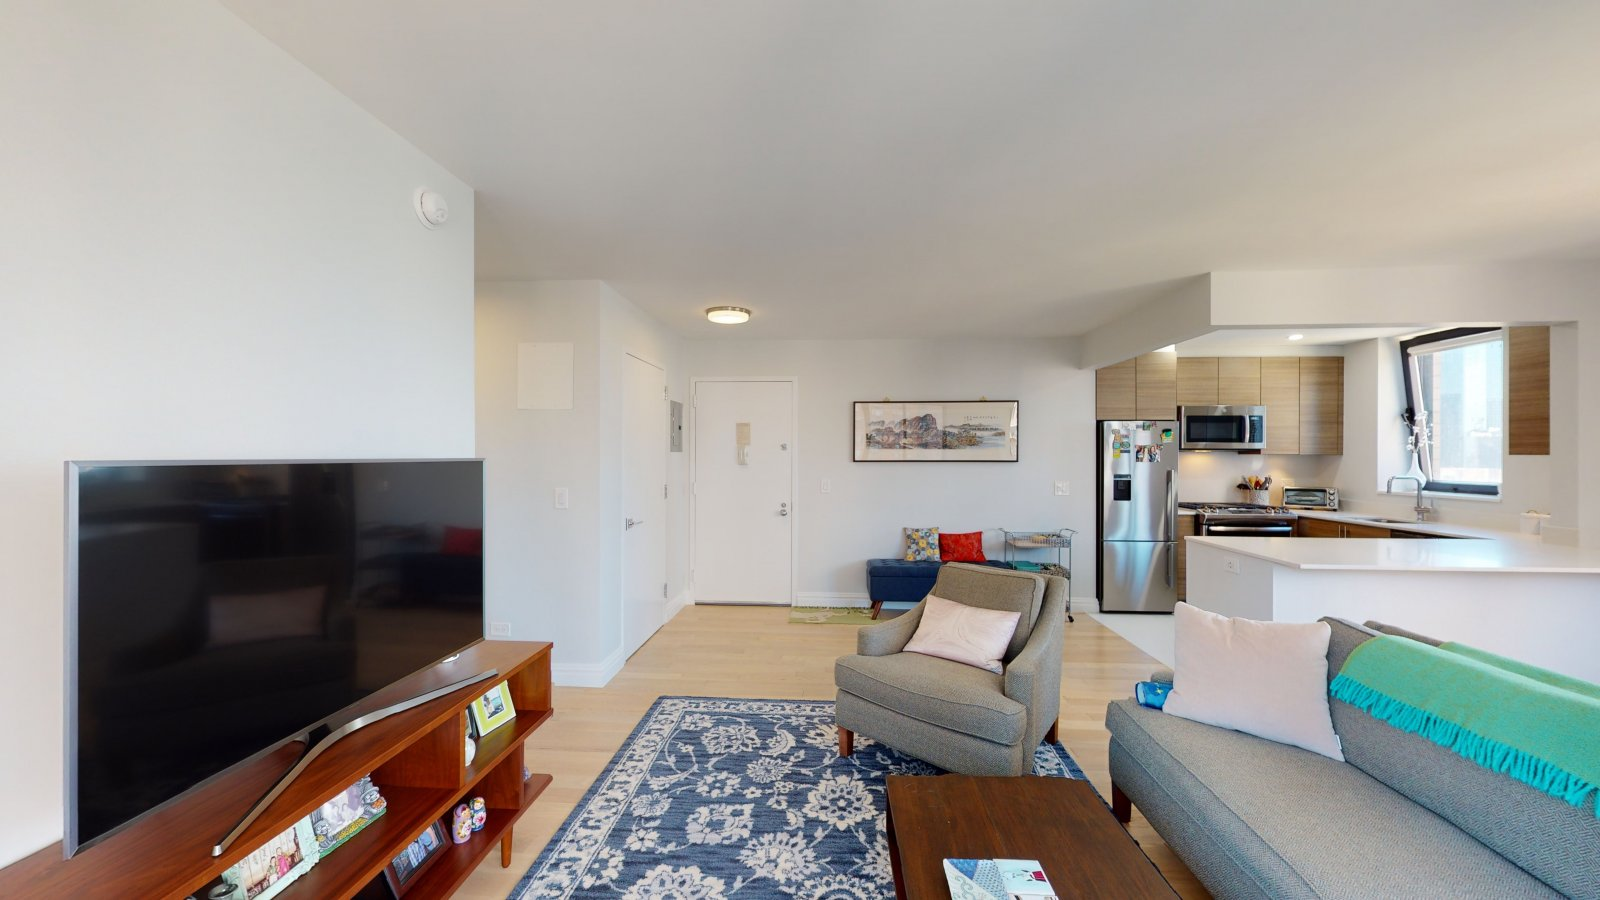 235 W 48th Street Unit 22L Living room and entry foyer of this Times Square adjacent rental apartment.